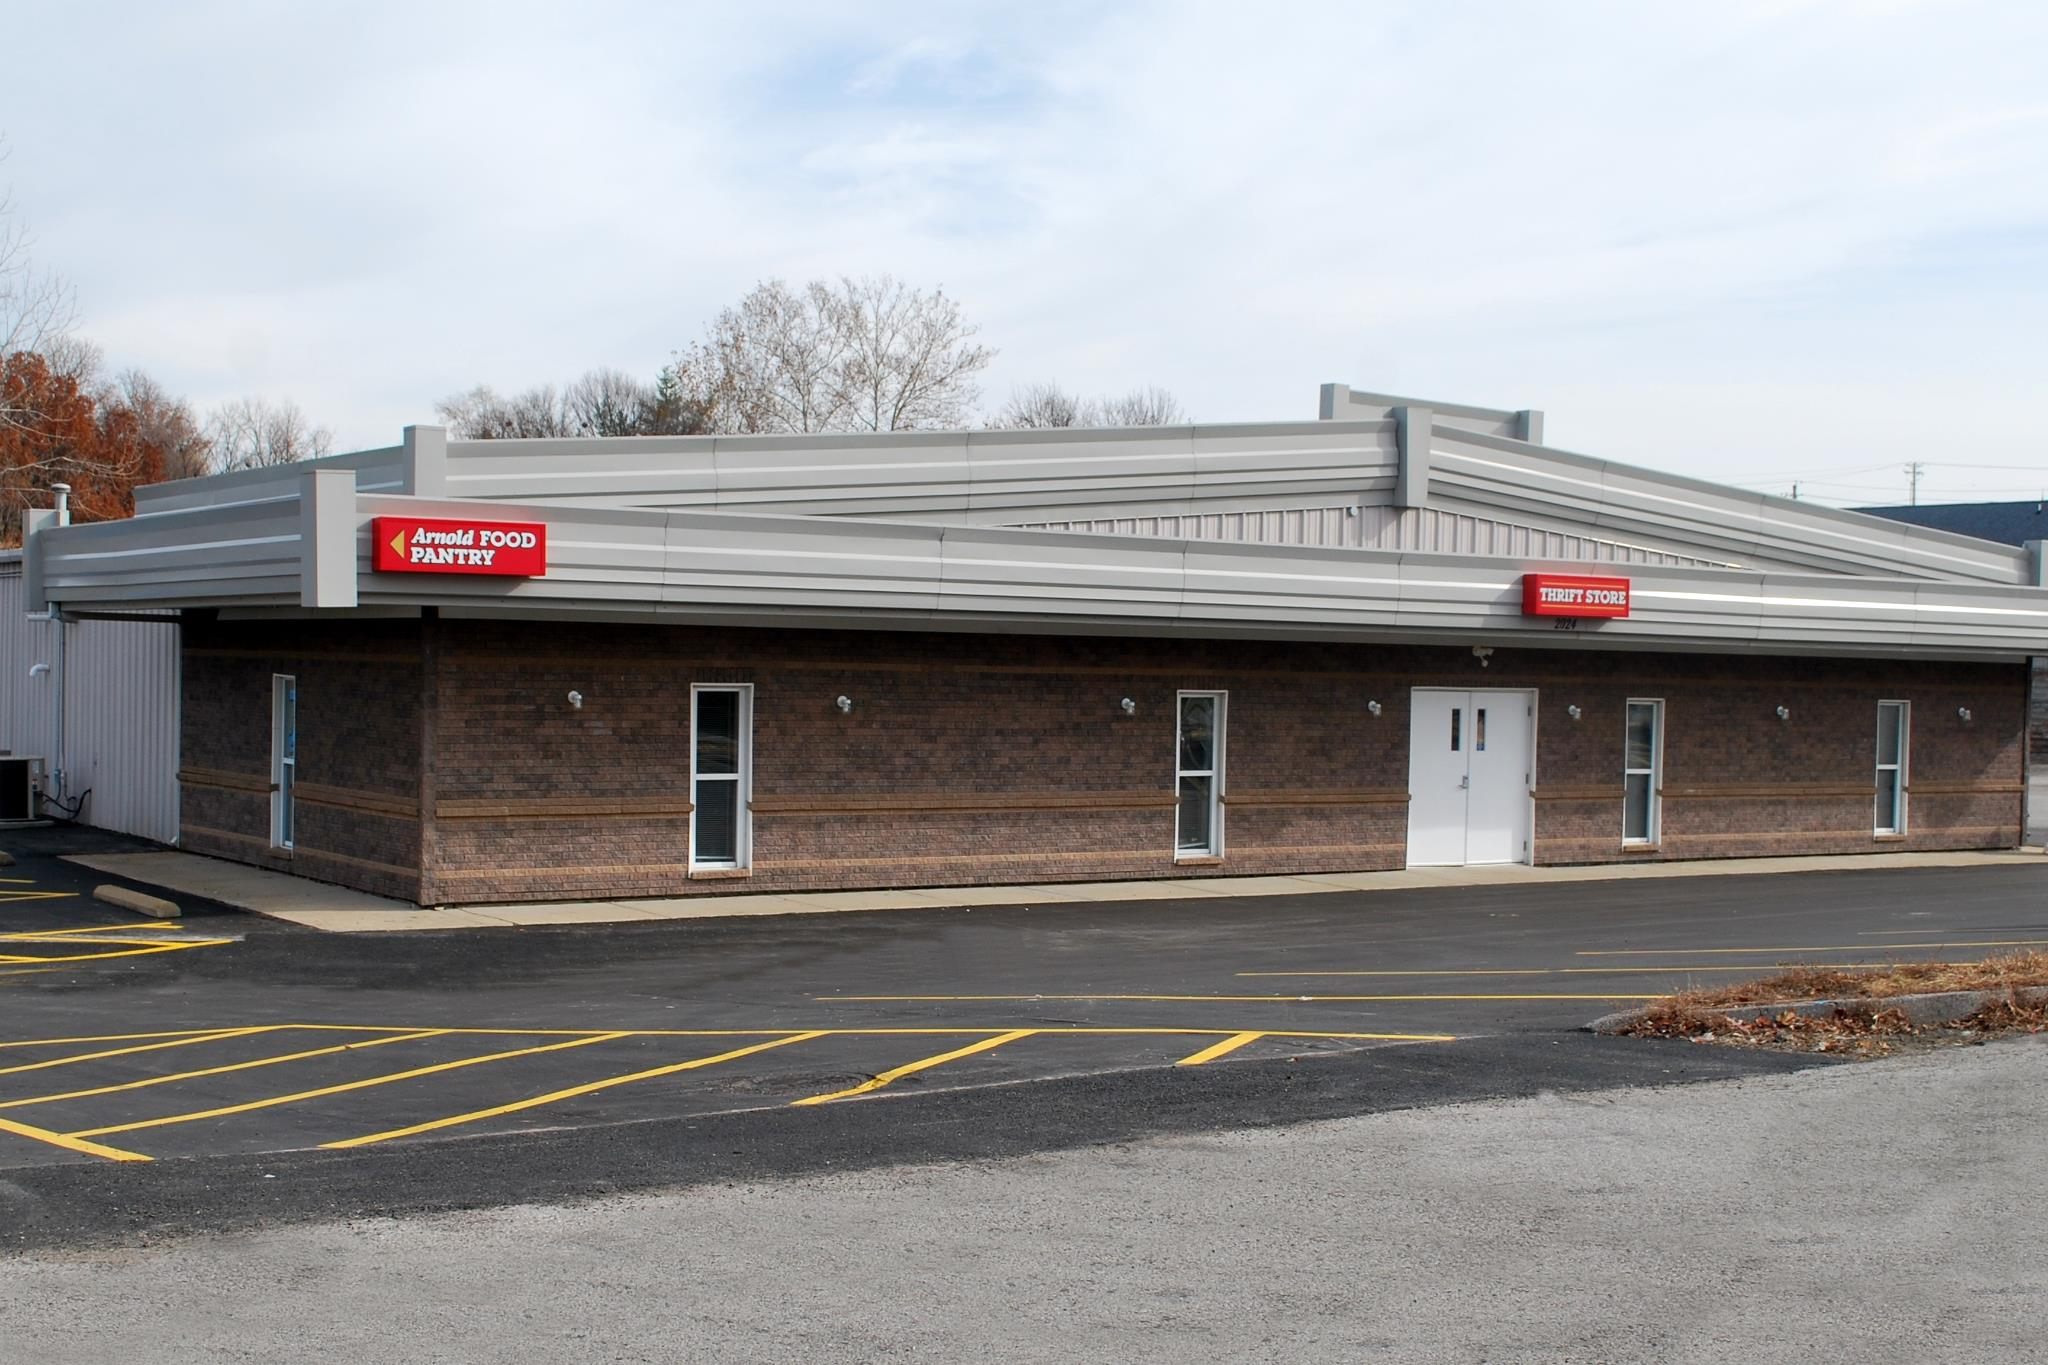 Arnold Food Pantry and Thrift Store